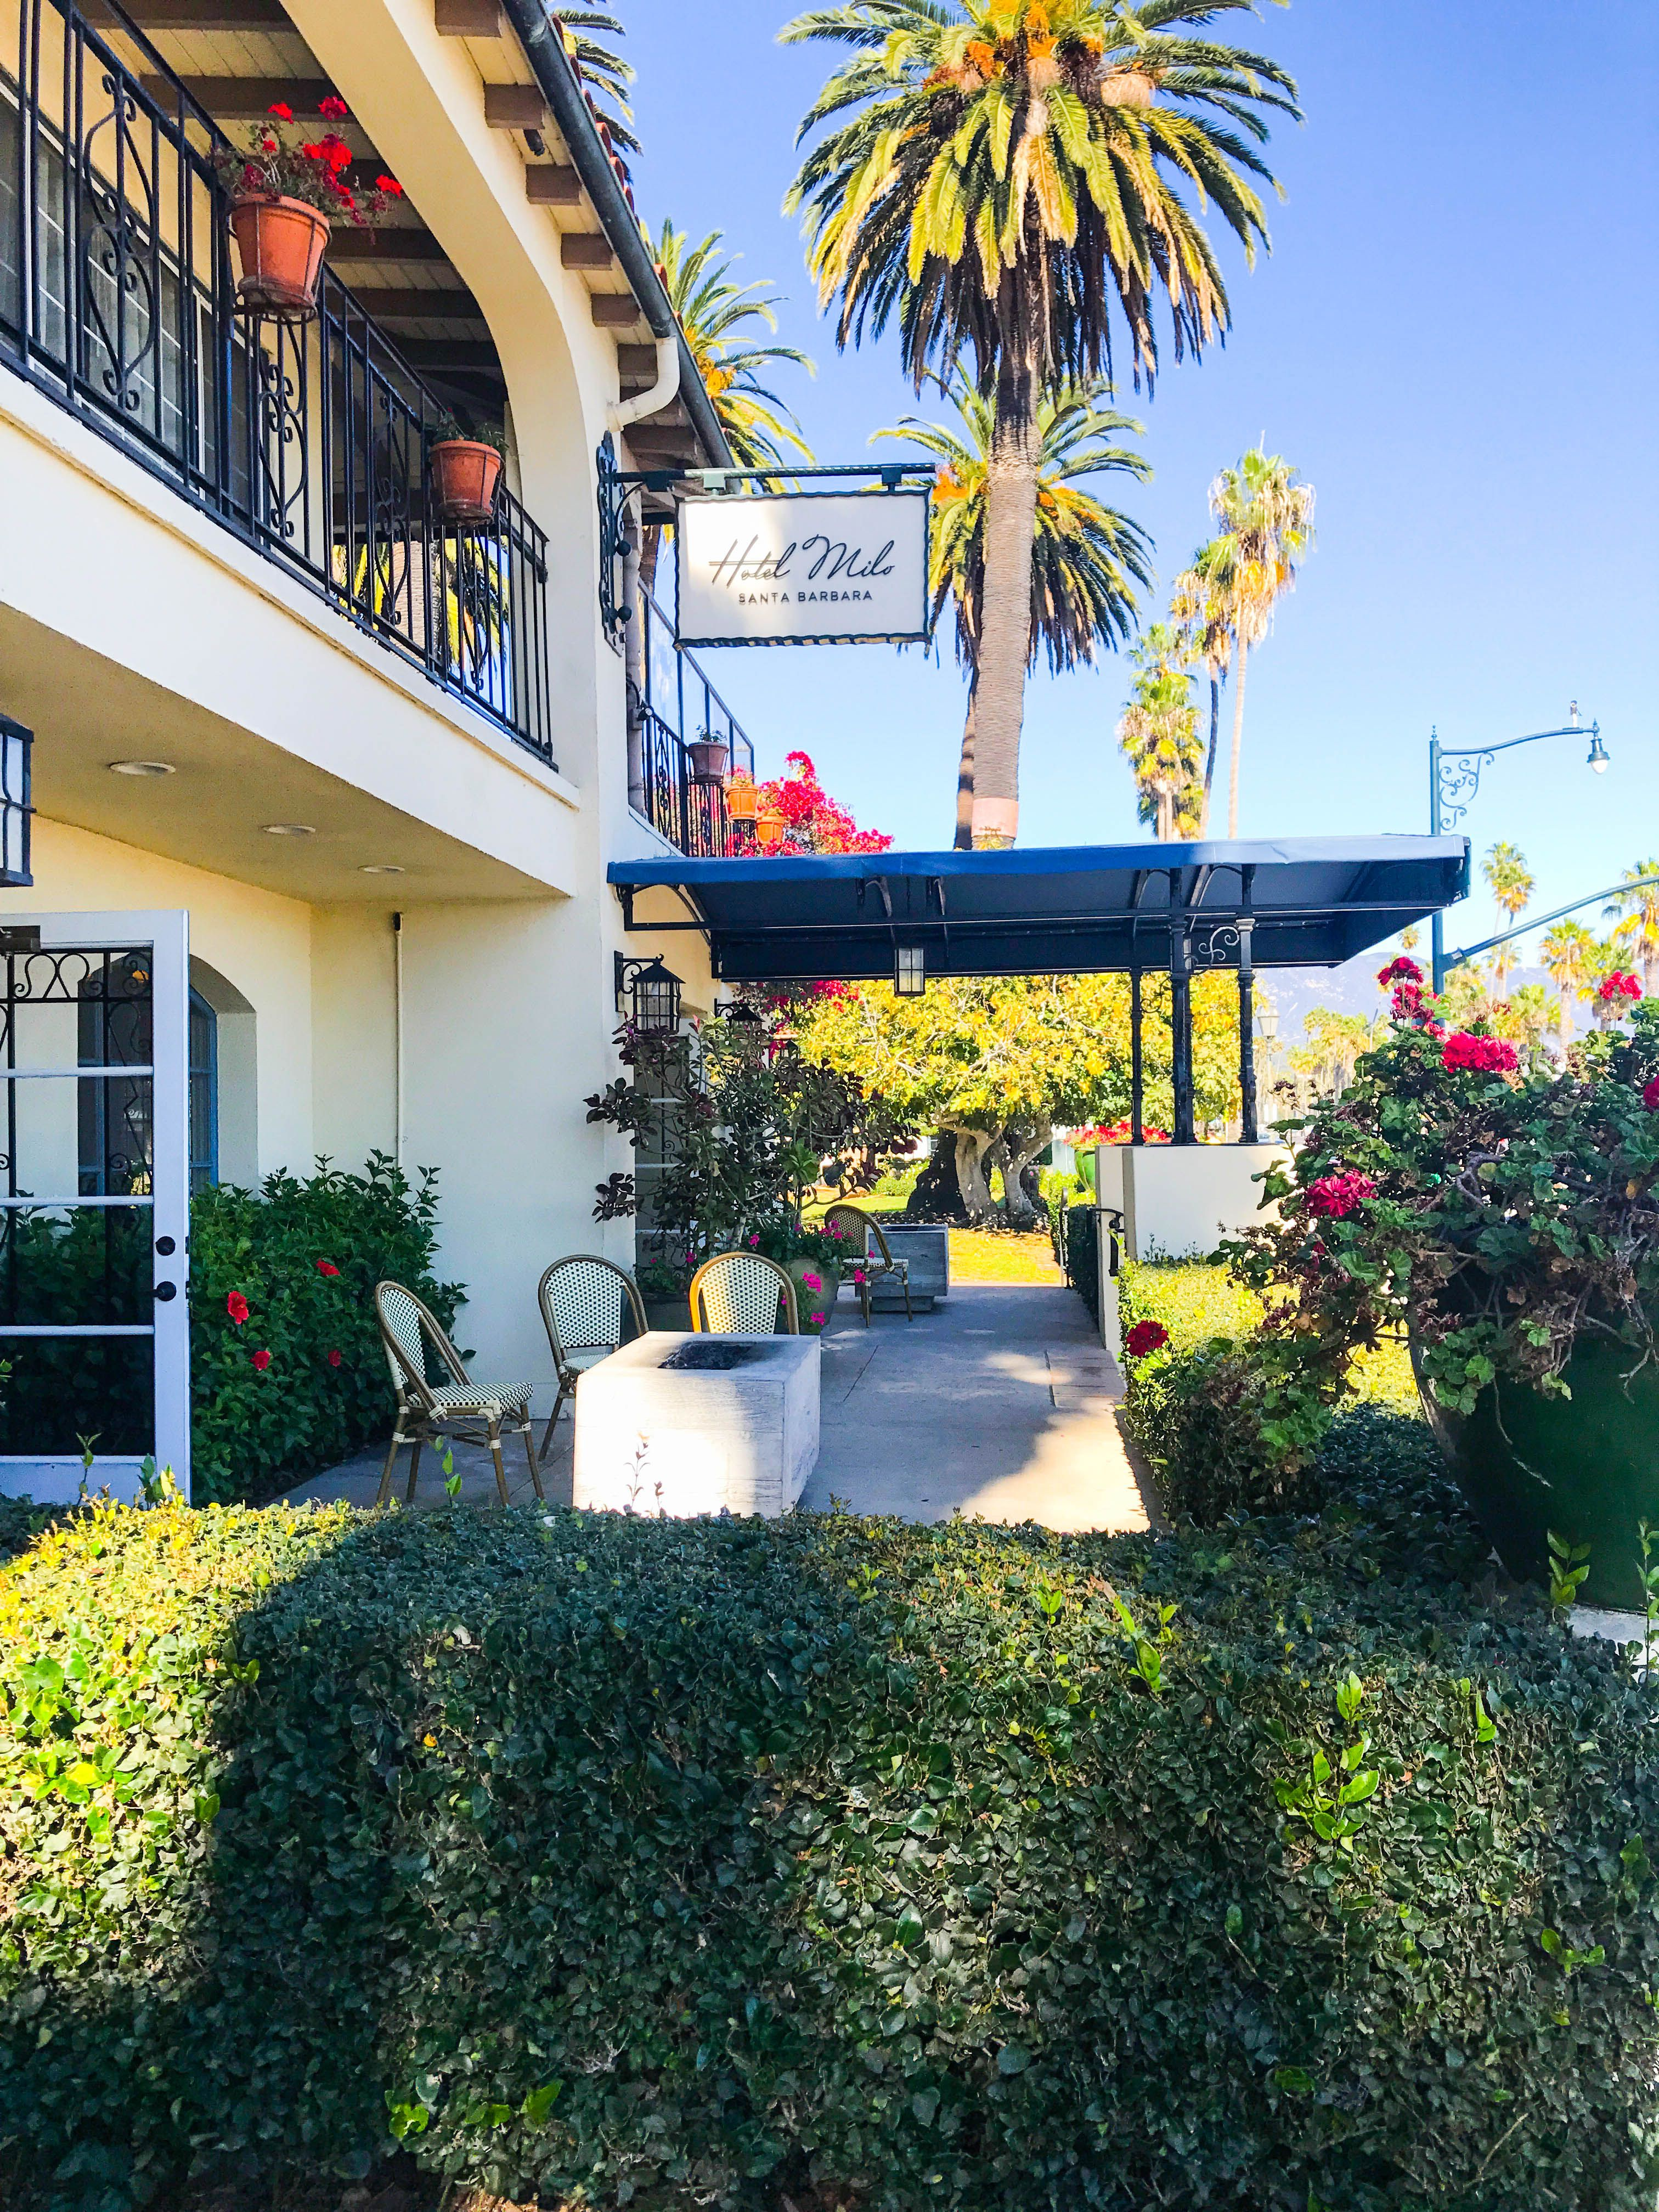 Welcome To Hotel Milo Perfectly Situated On The Santa Barbara